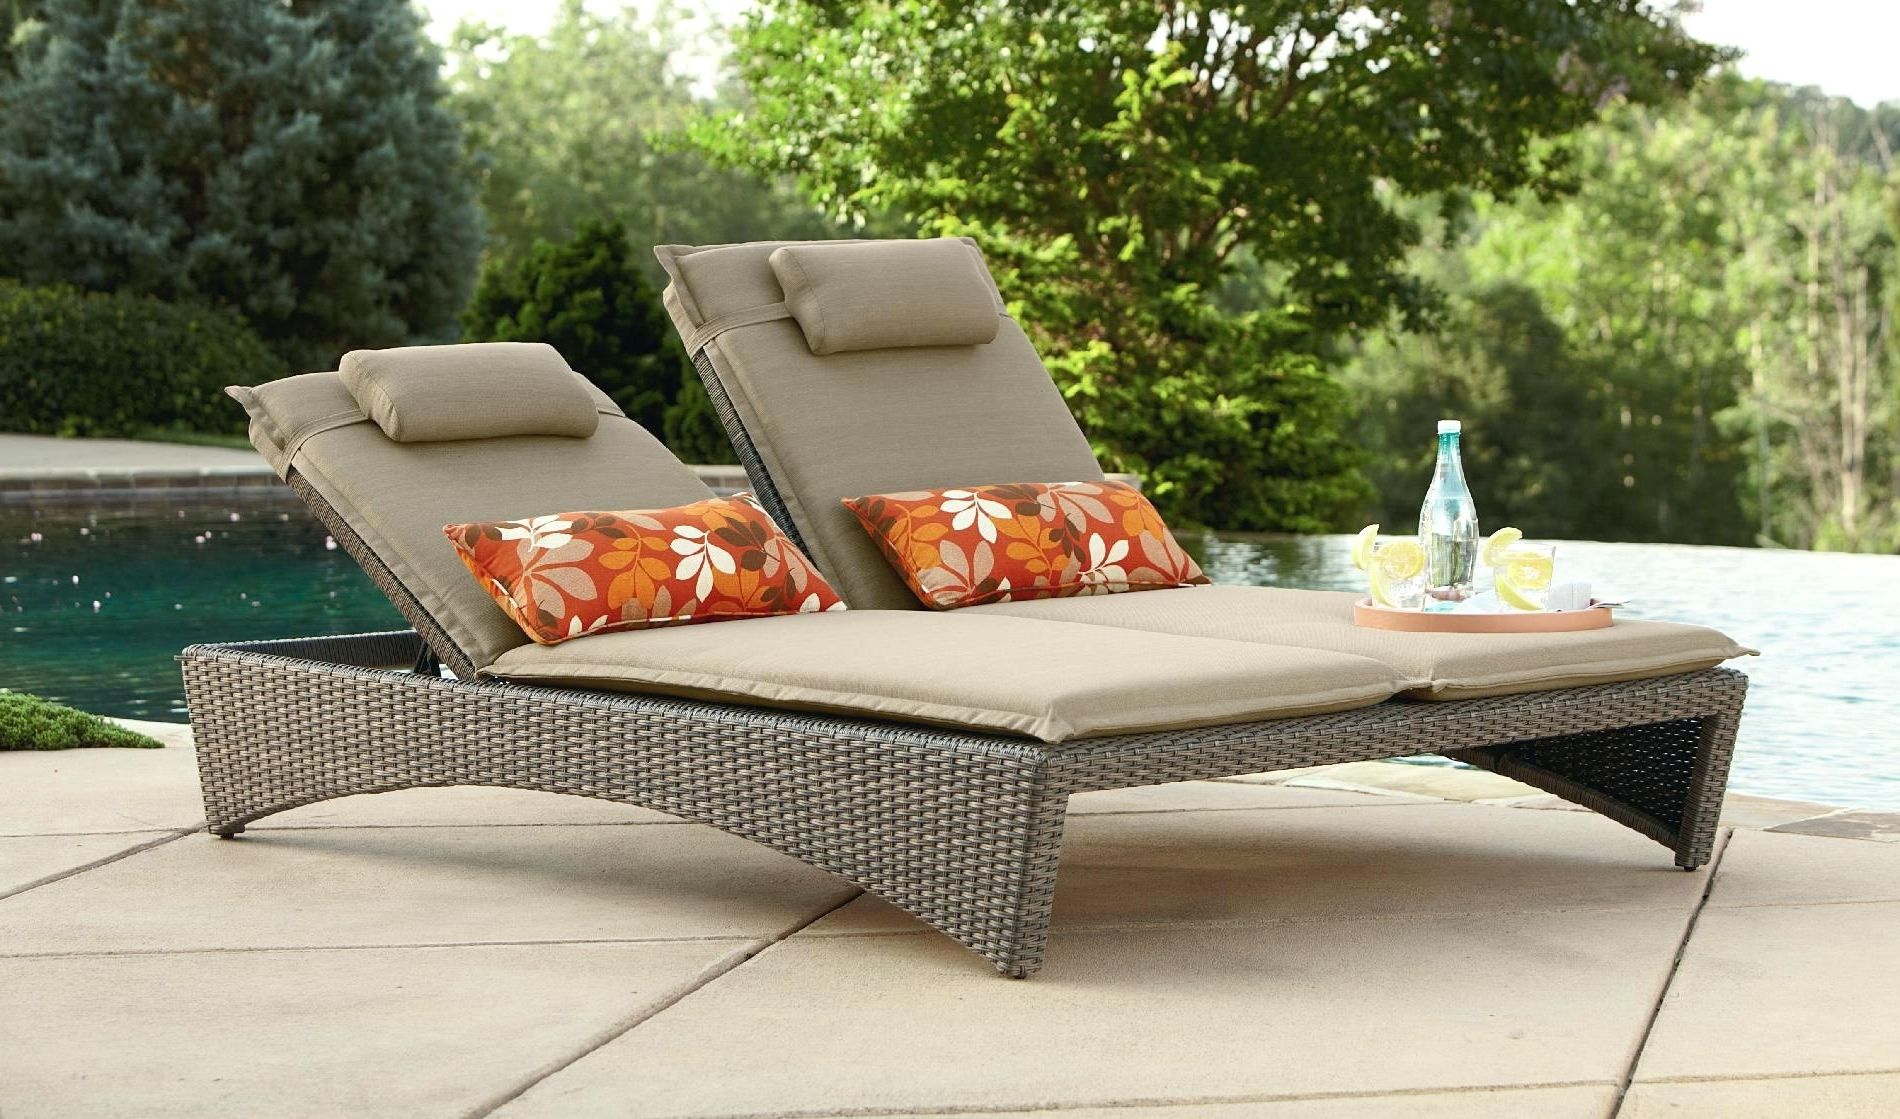 Outdoor Chaise Lounge Chairs Under 100 Awesome Chair For Two With Regard To Best And Newest Chaise Lounge Chairs For Poolside (View 11 of 15)